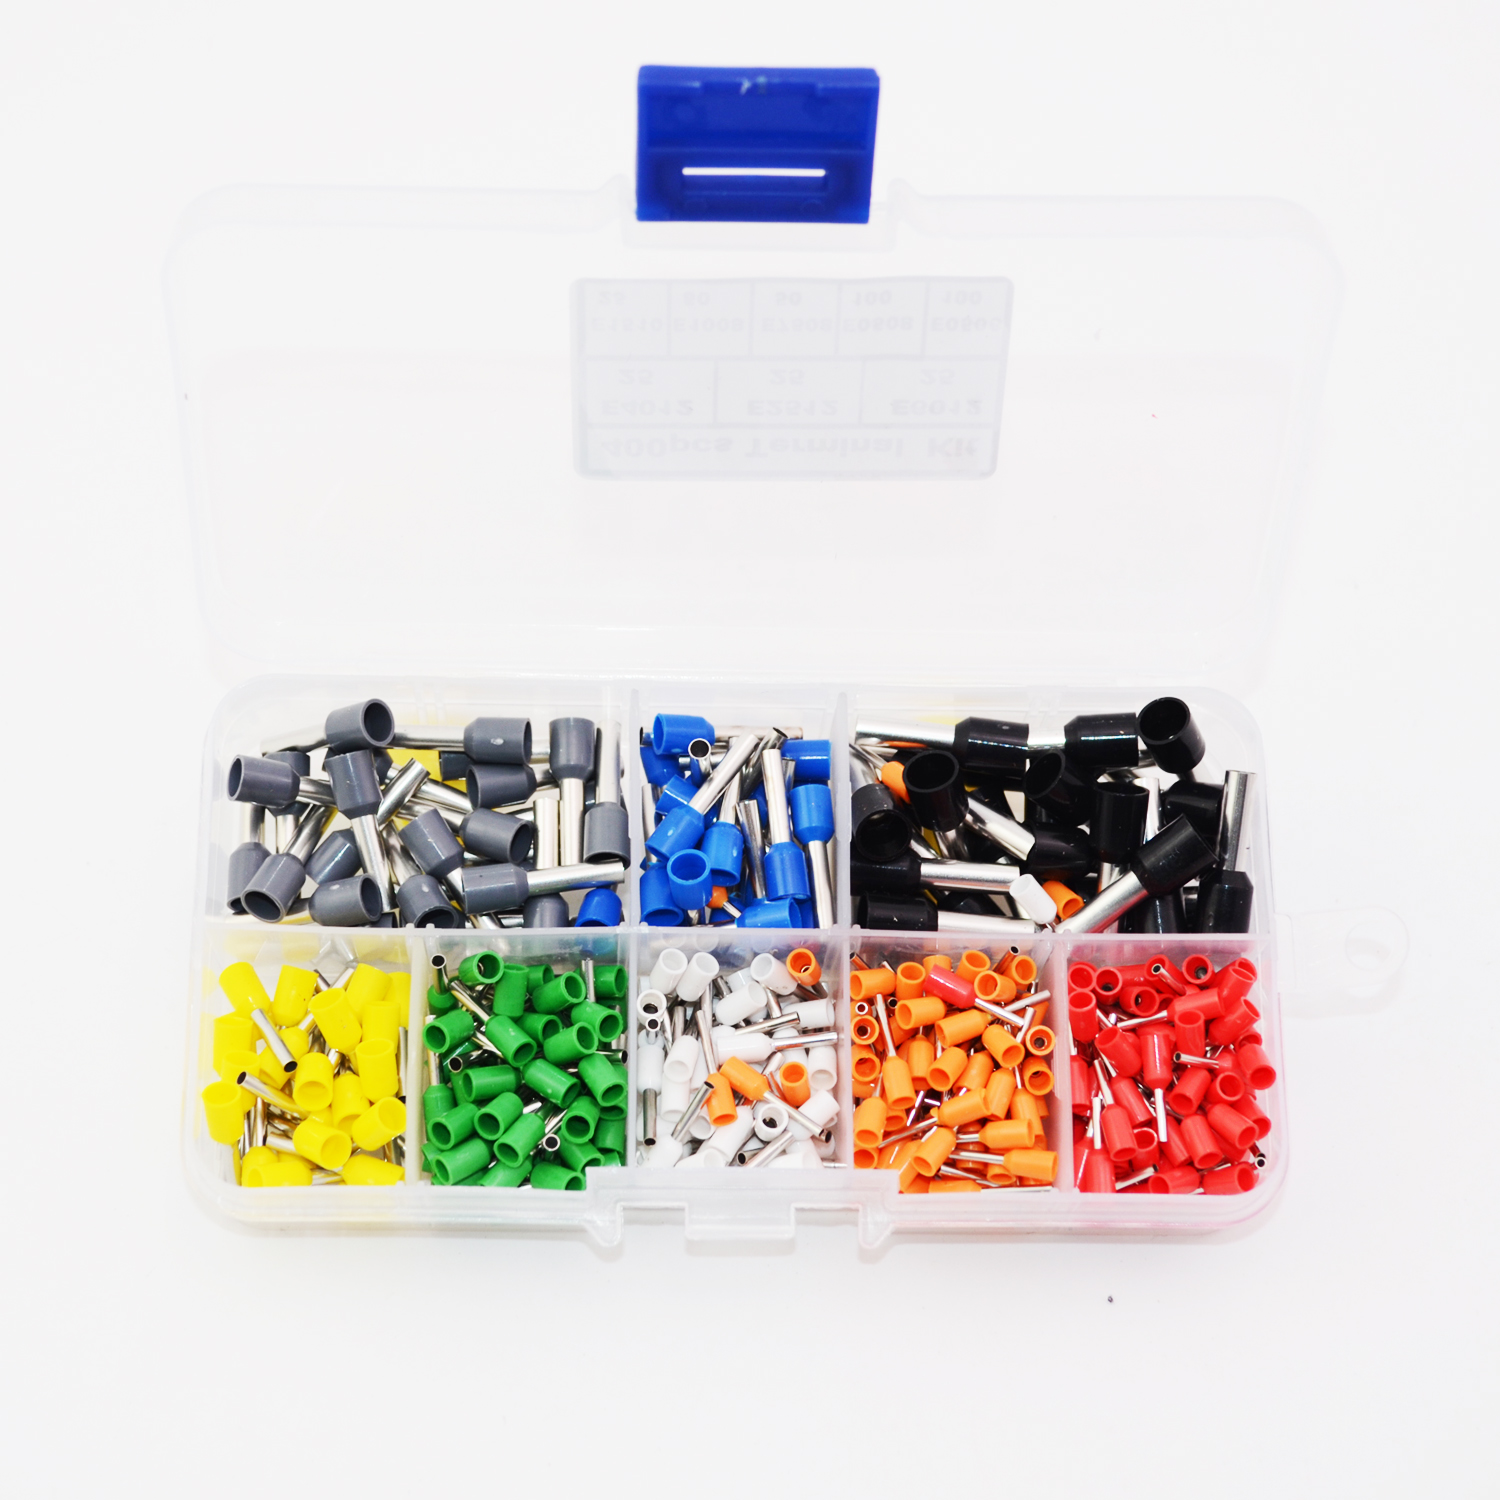 Hot sale 400pcs/set Insulated Cord Pin End Terminal Ferrules Kit Set Wire Copper Crimp Connector AWG 22 - 10 800pcs cable bootlace copper ferrules kit set wire electrical crimp connector insulated cord pin end terminal hand repair kit